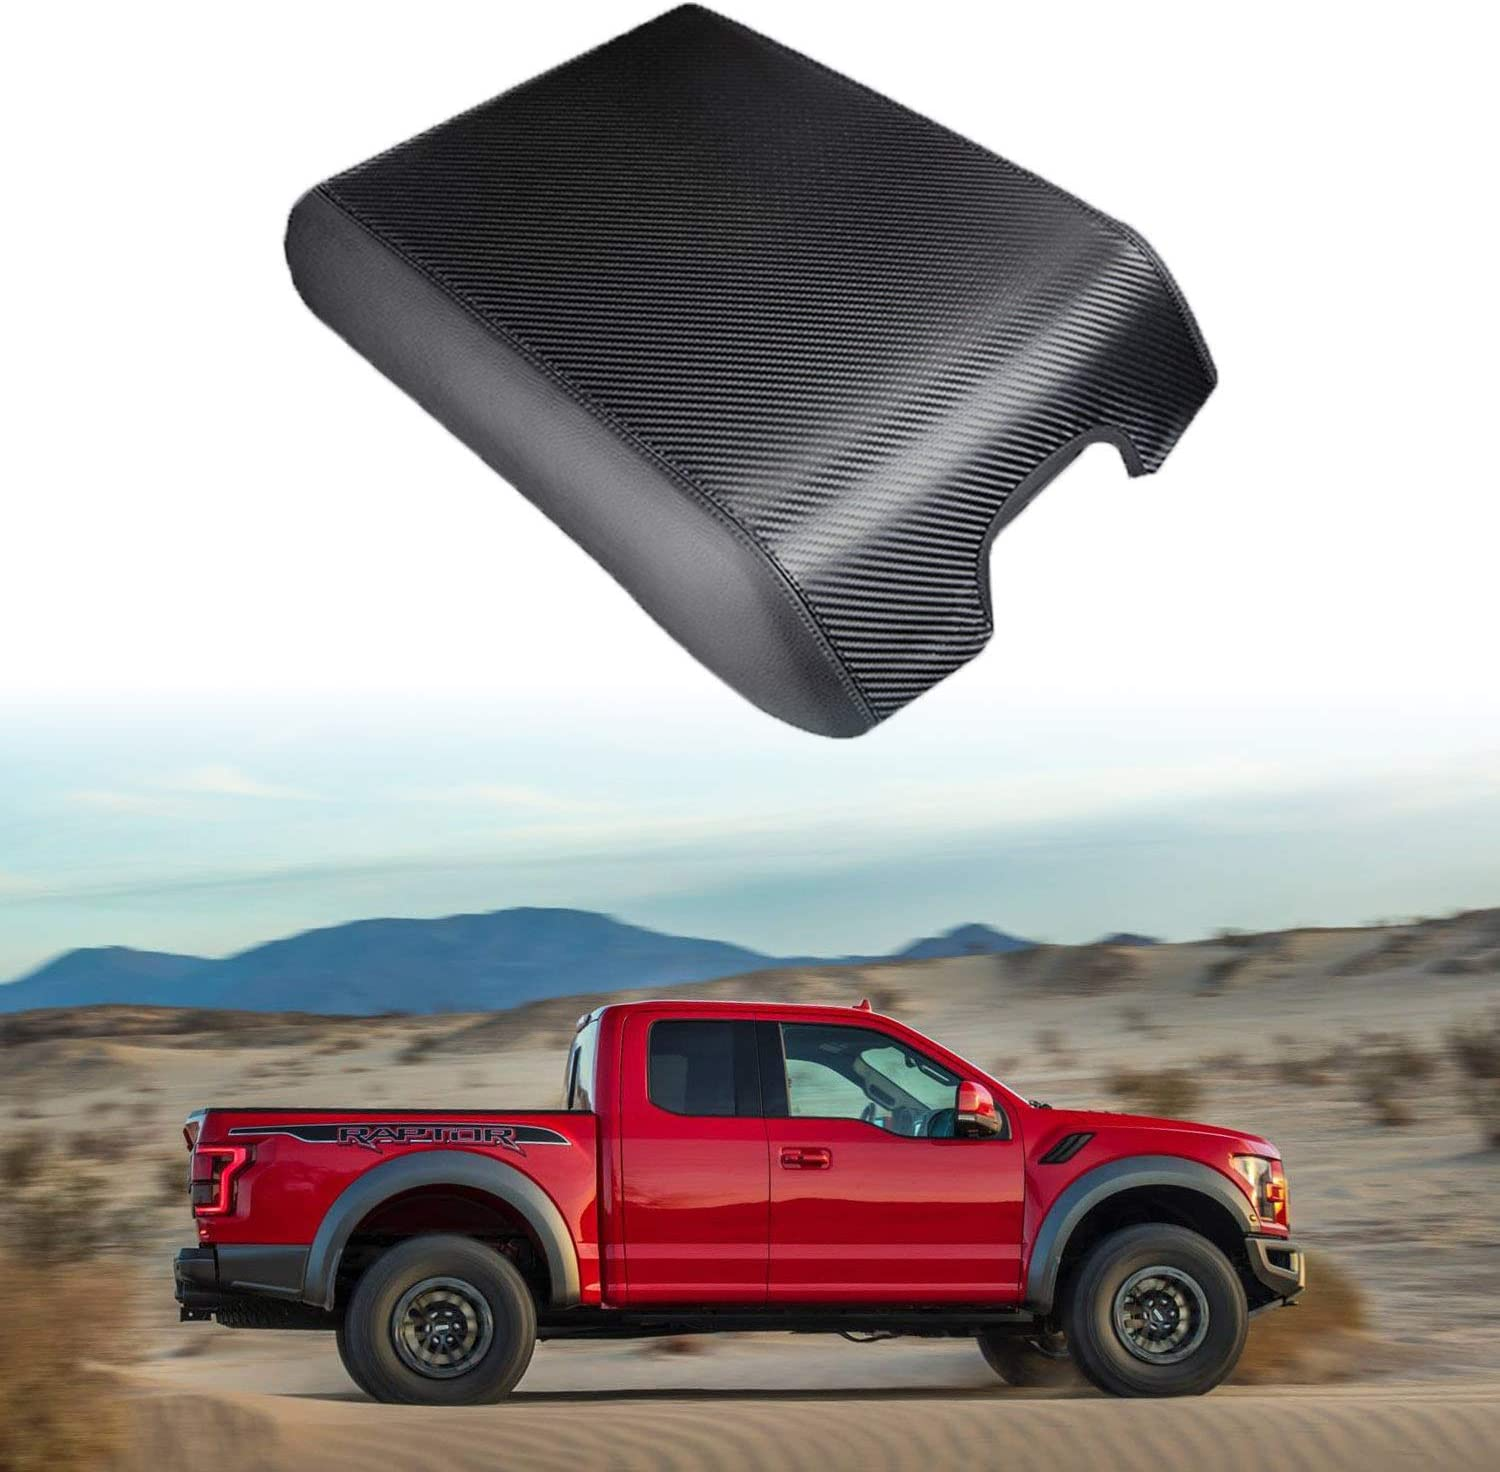 Center Console Cover Carbon Fiber Texture for Ford F150,F250,F350 2015-2019,Waterproof Anti-Scratch Car Console Cover,F150 Center Console Armrest Protector Cover Your Console Lid Must Match Photo